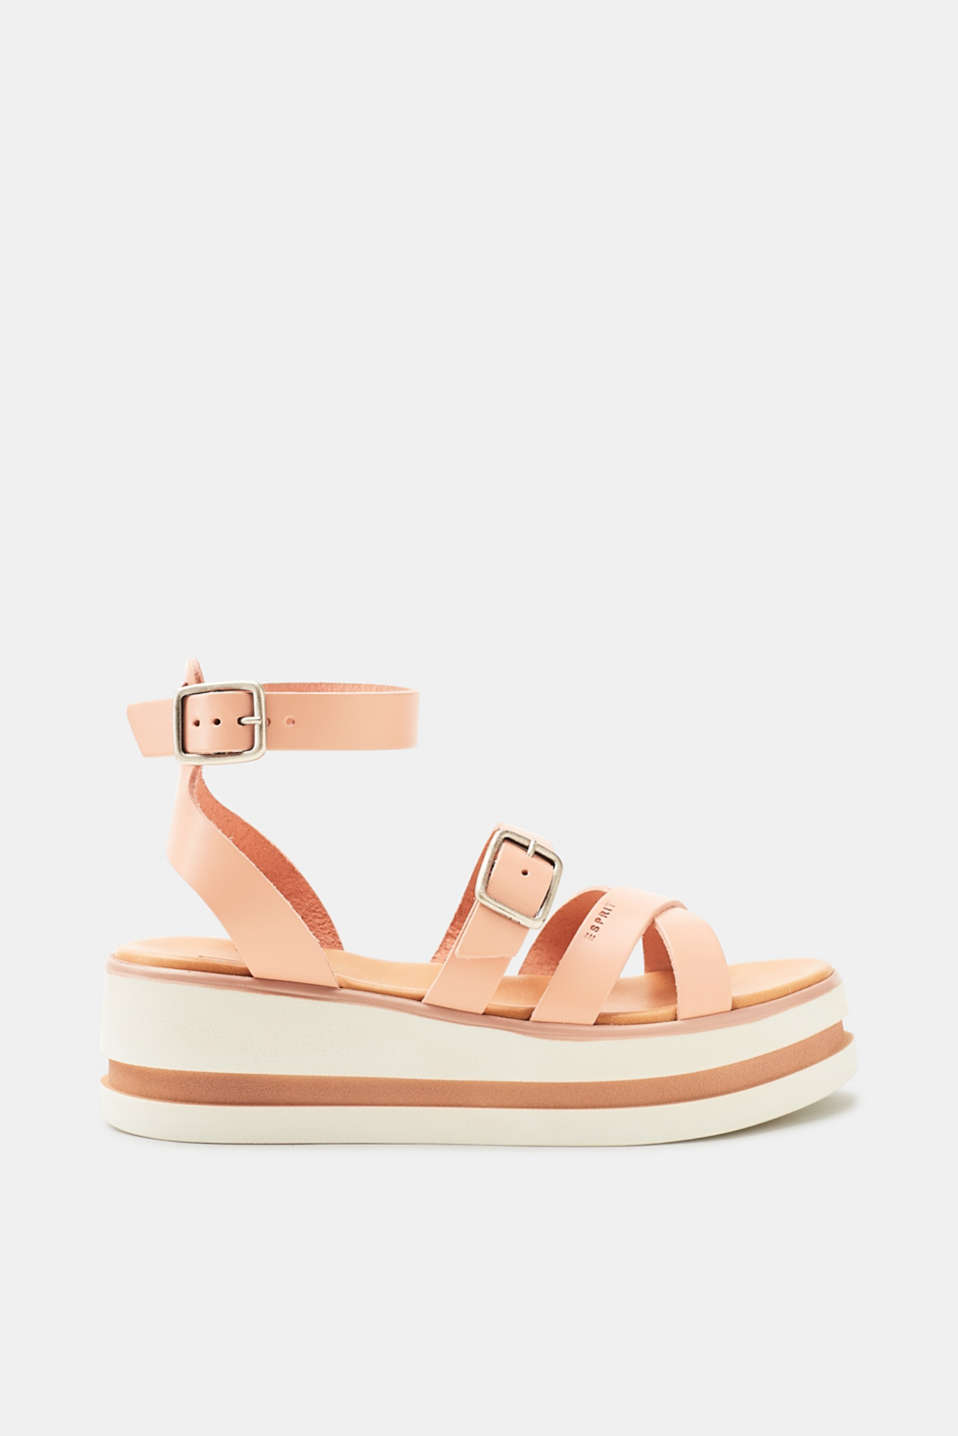 We love flatforms! These flat sandals wow with a stunning platform sole.